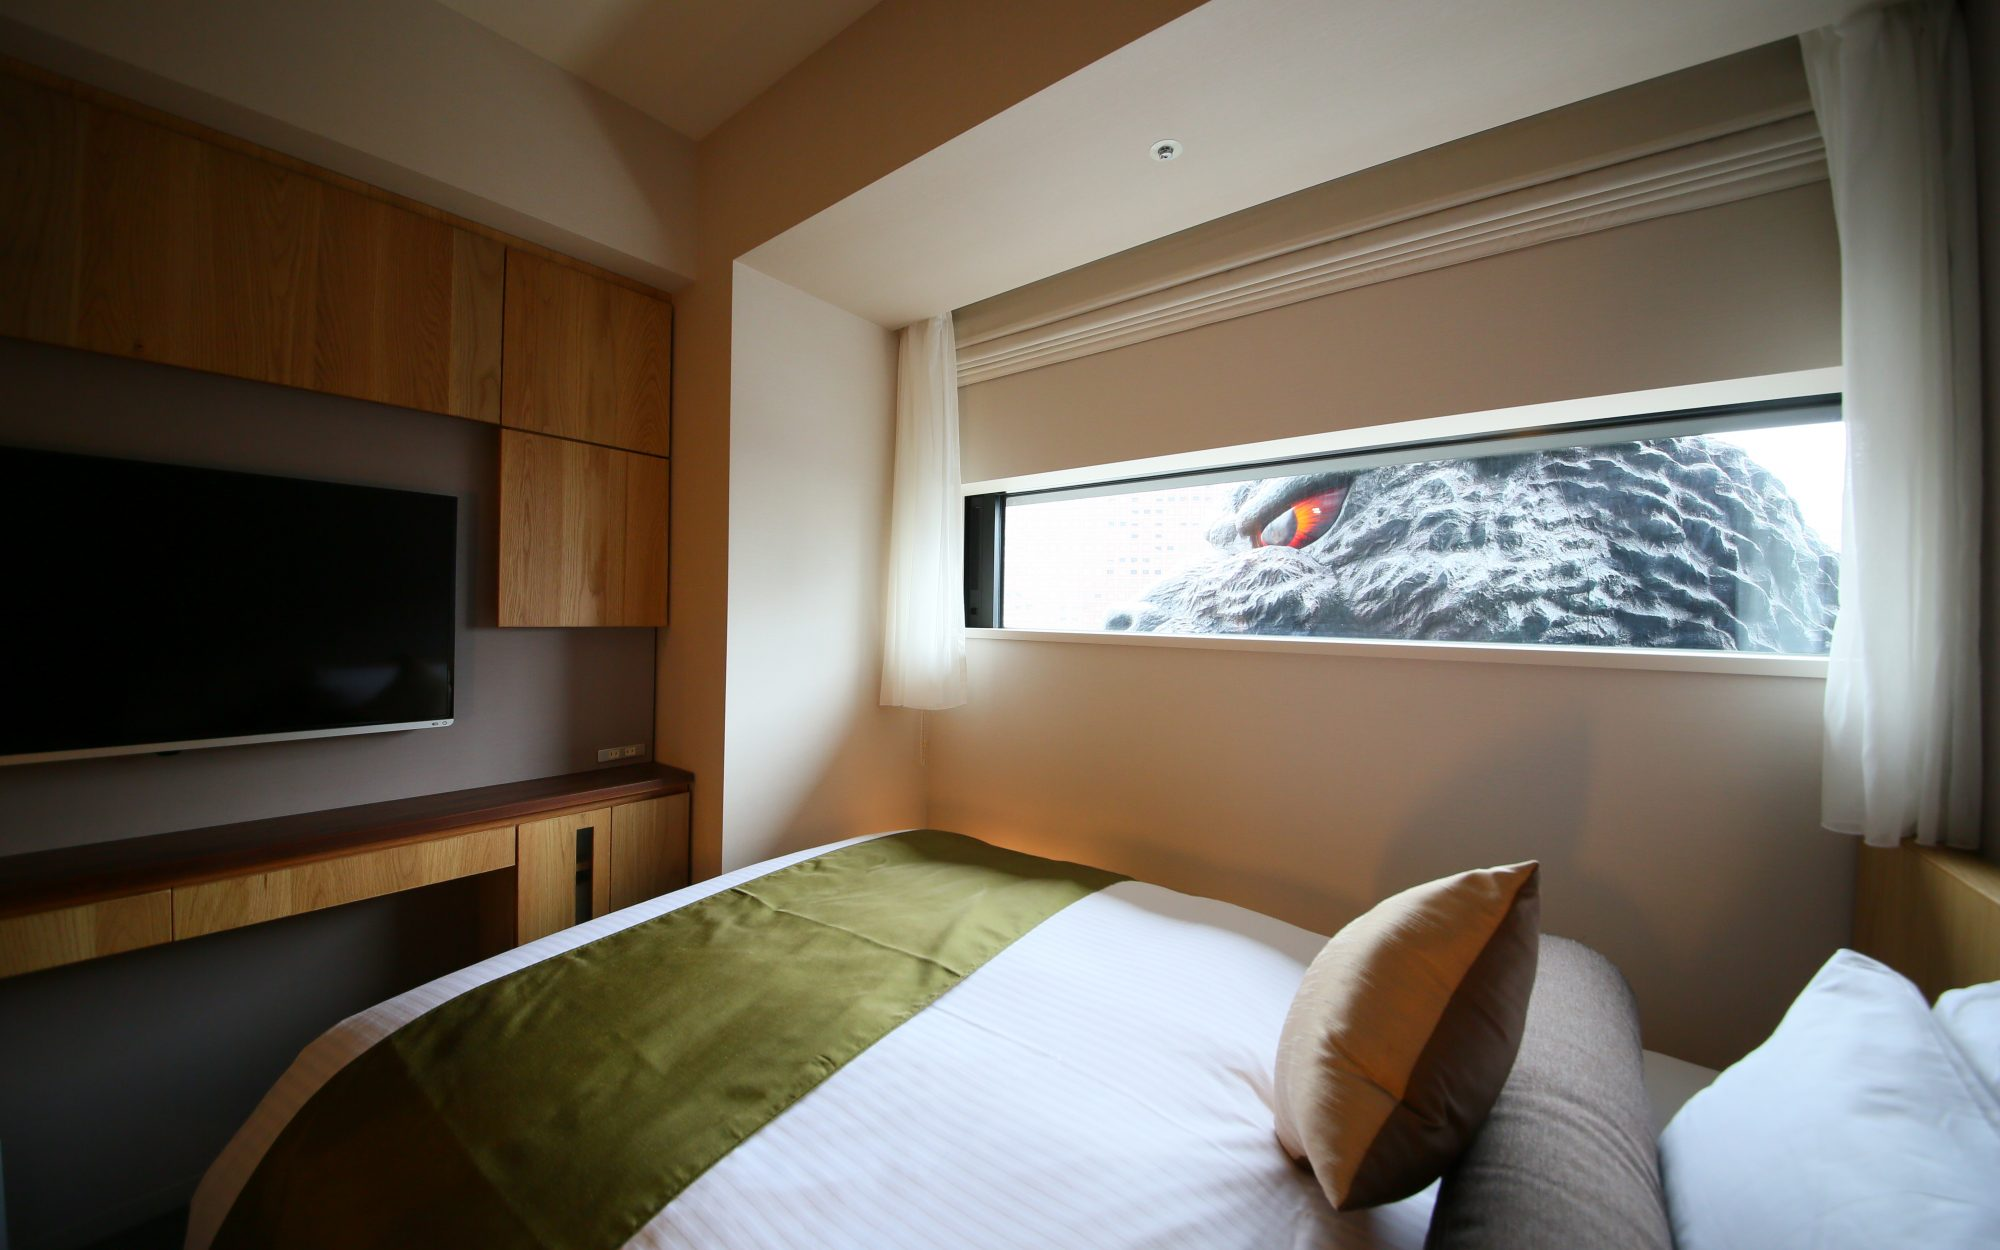 There\u0027s Now a Hotel in Tokyo with Godzilla-Themed Rooms | Travel + ...